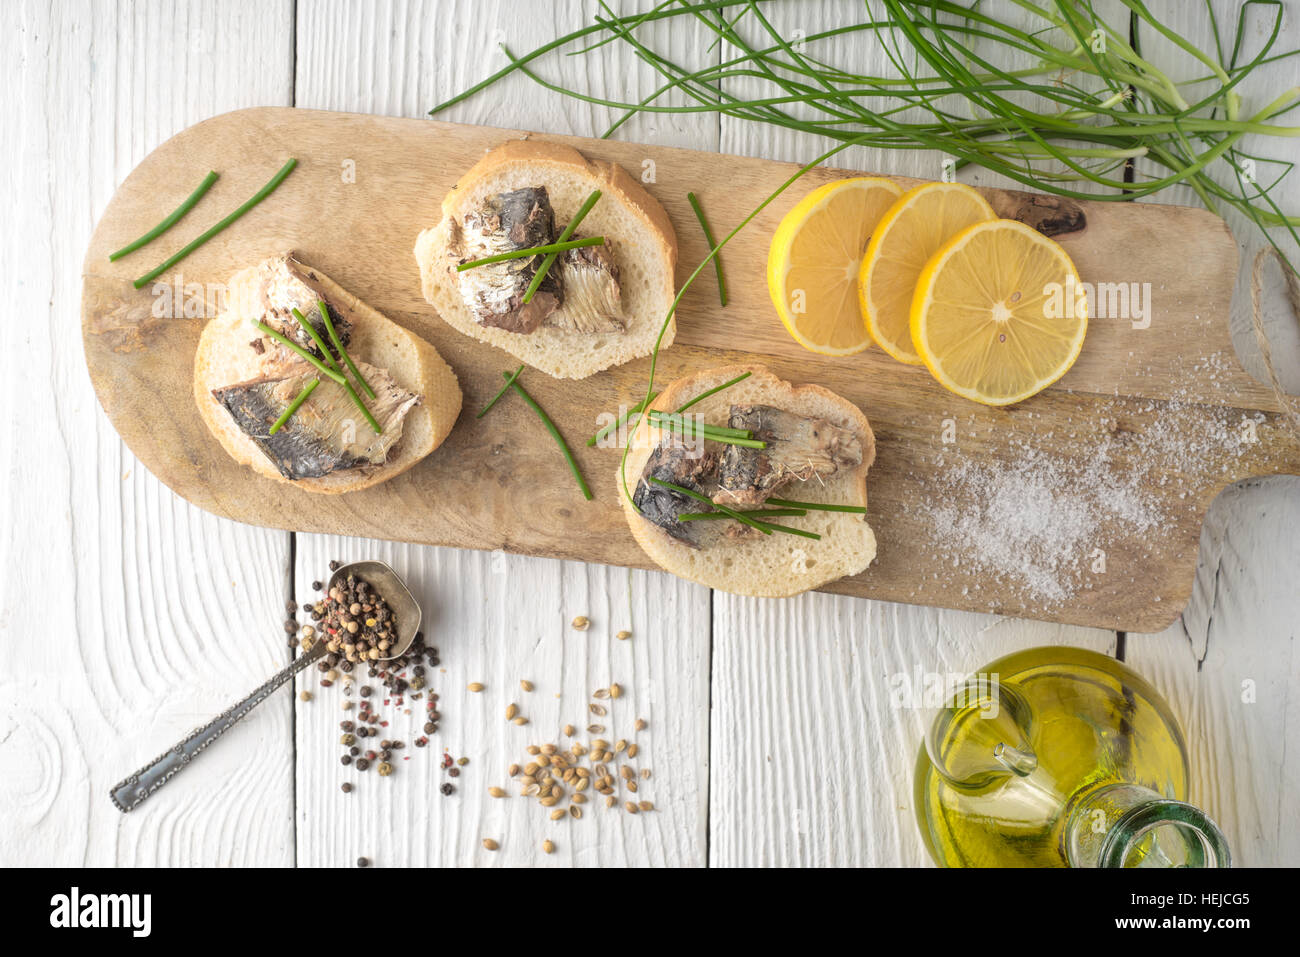 Sandwiches with sardines and onions on a cutting board horizontal - Stock Image